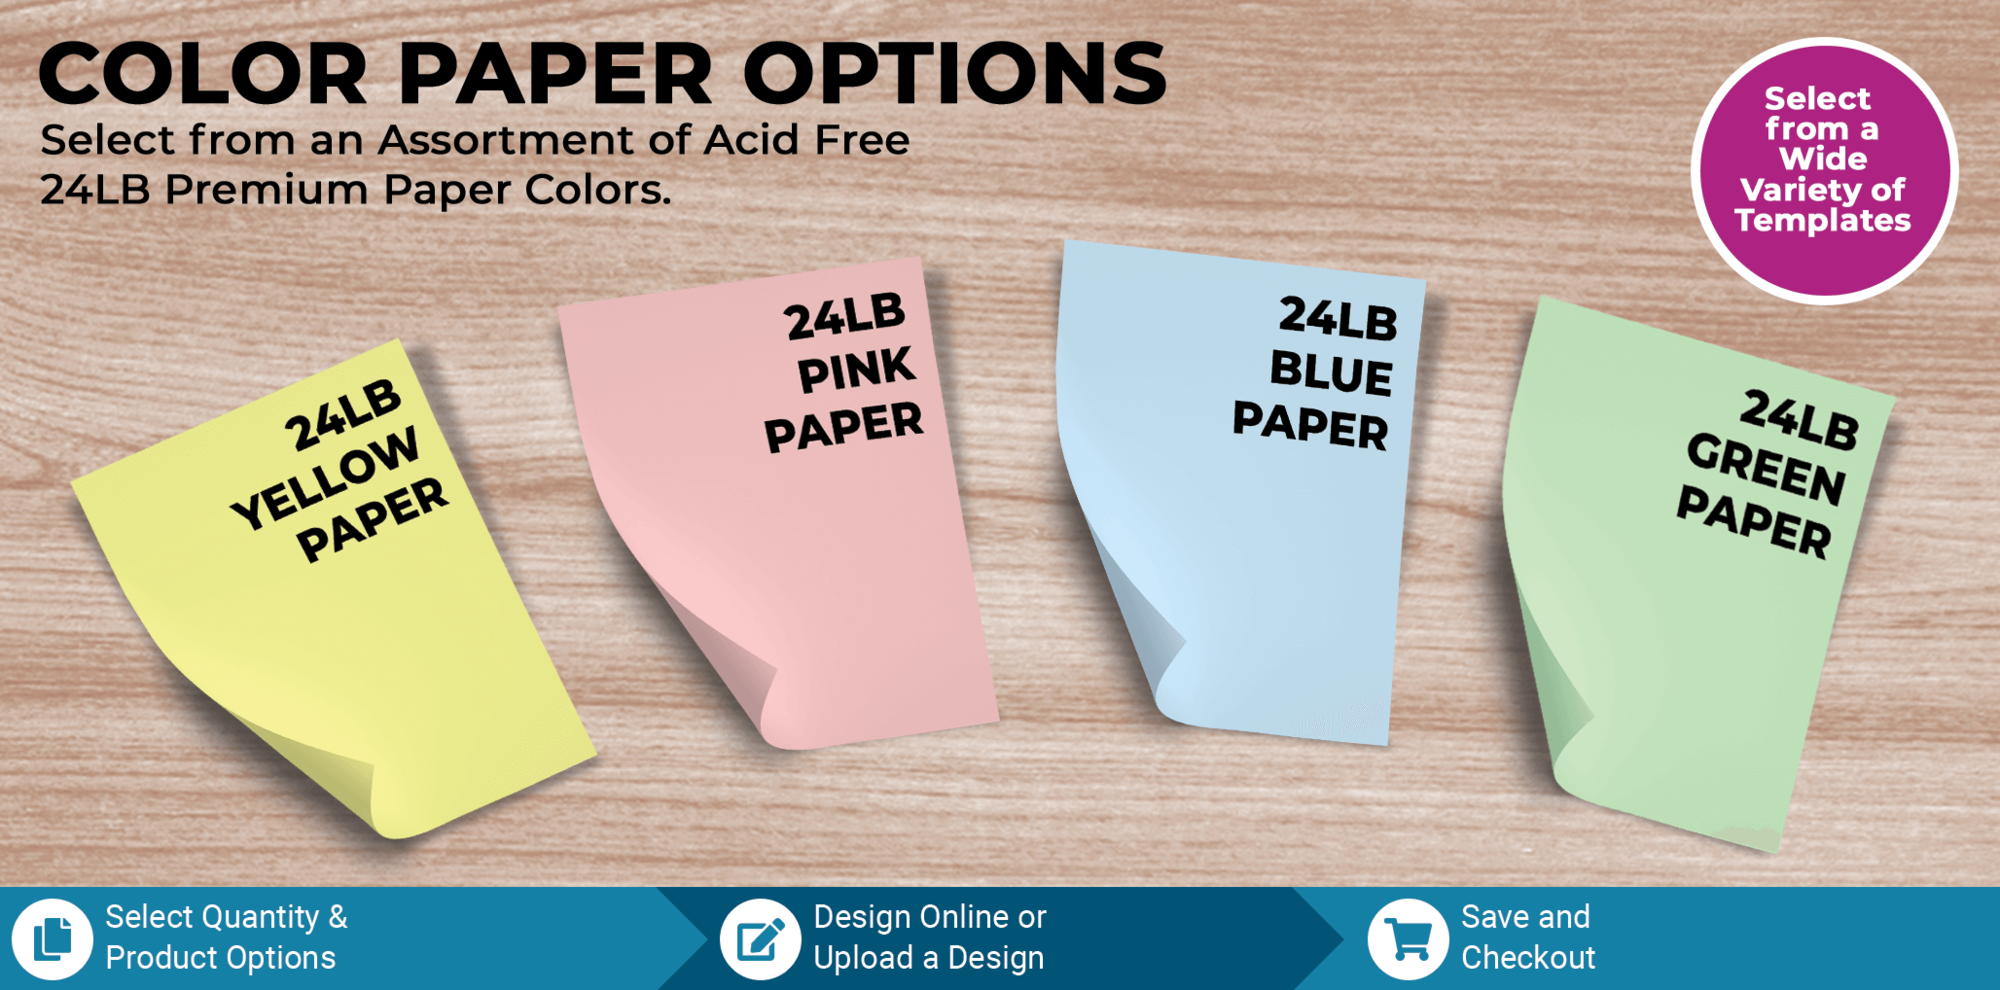 https://printpps.com/images/products_gallery_images/Custom-Sticky-Notes_Product-Page-Banner-242.png